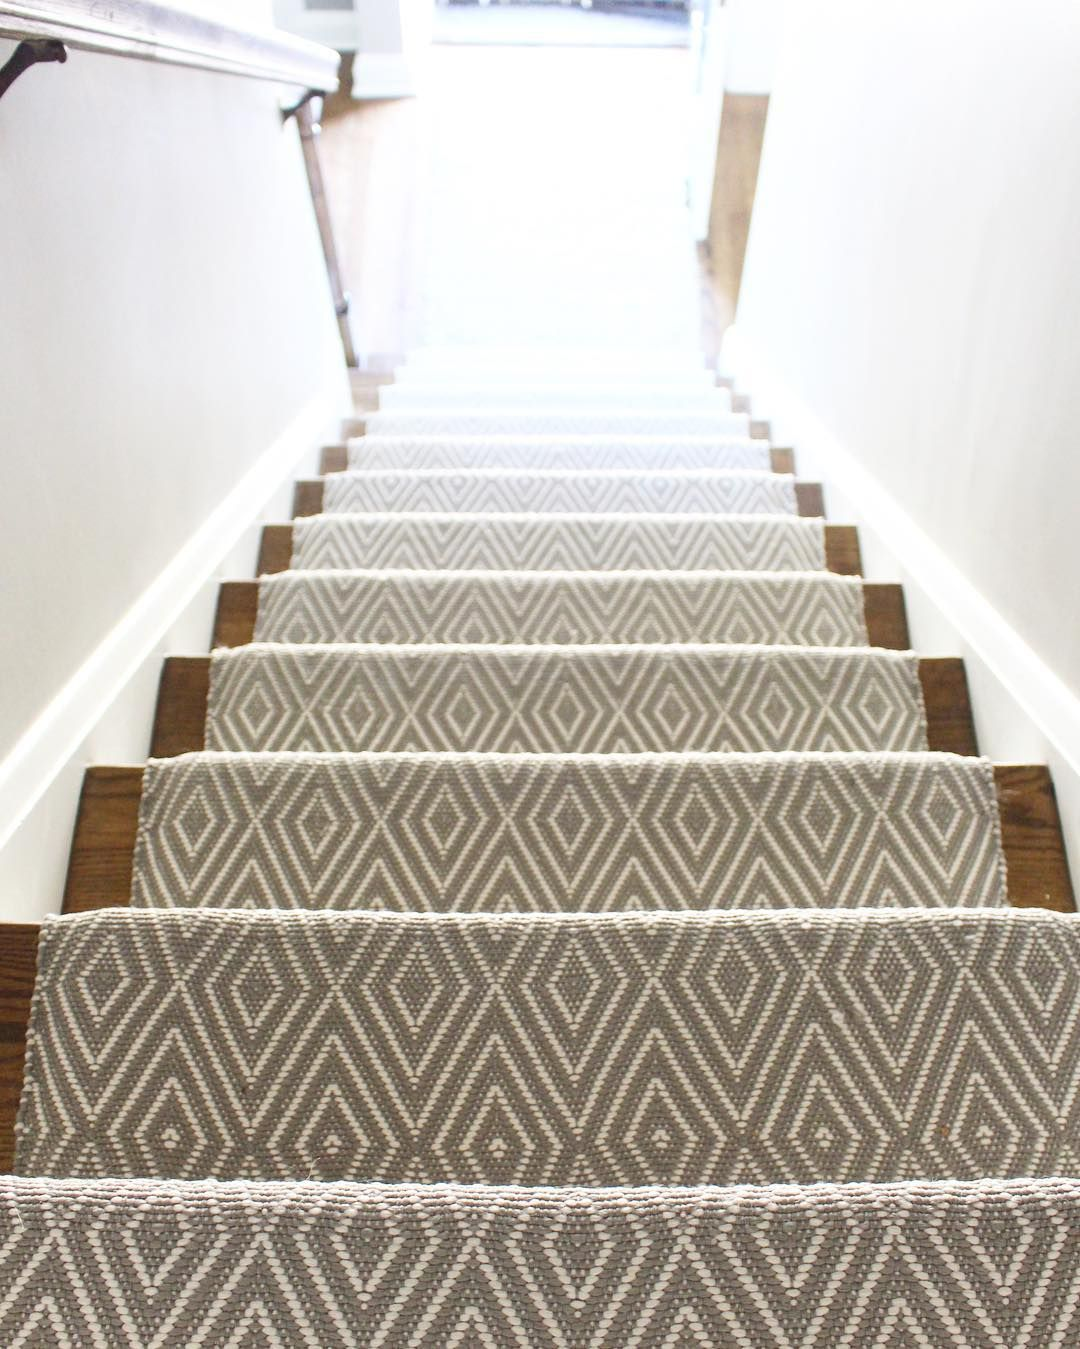 Wide Stair Runner W Pattern Carpet Stairs Stair Runner Carpet Stair Runner